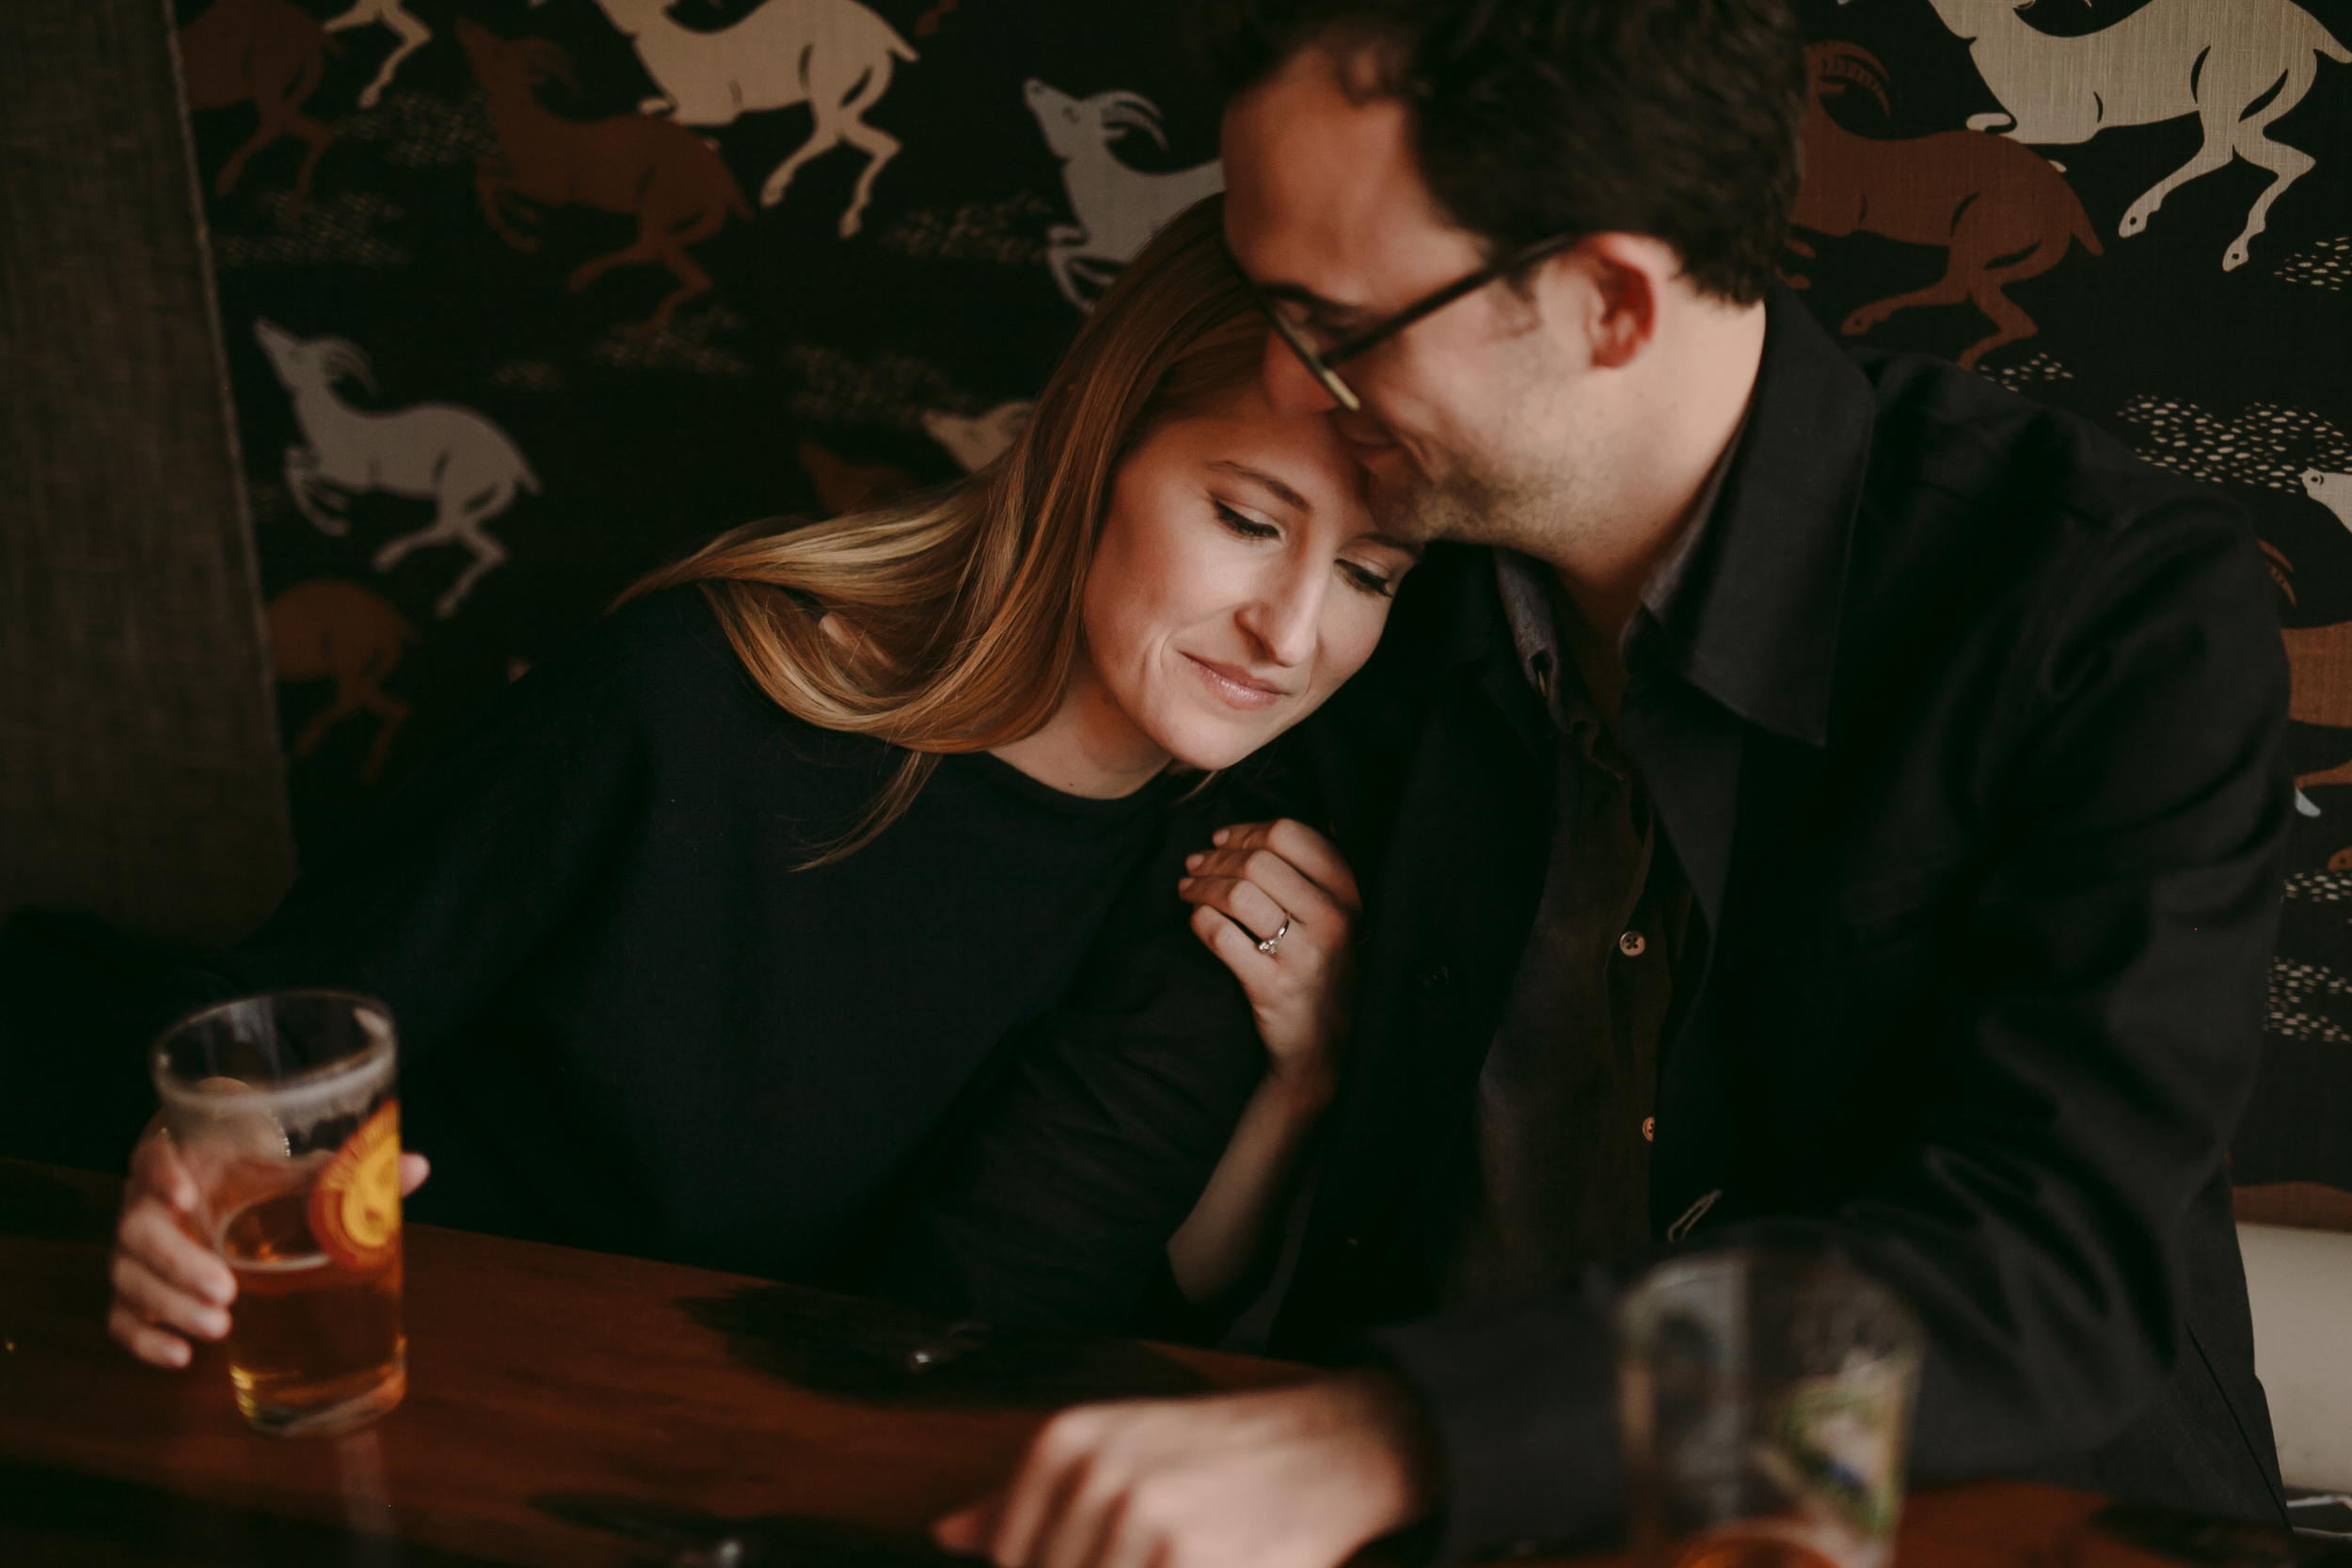 Cameron + Joe Engagement Photos in The Gulch Nashville Photography Anthology (2 of 24).jpg